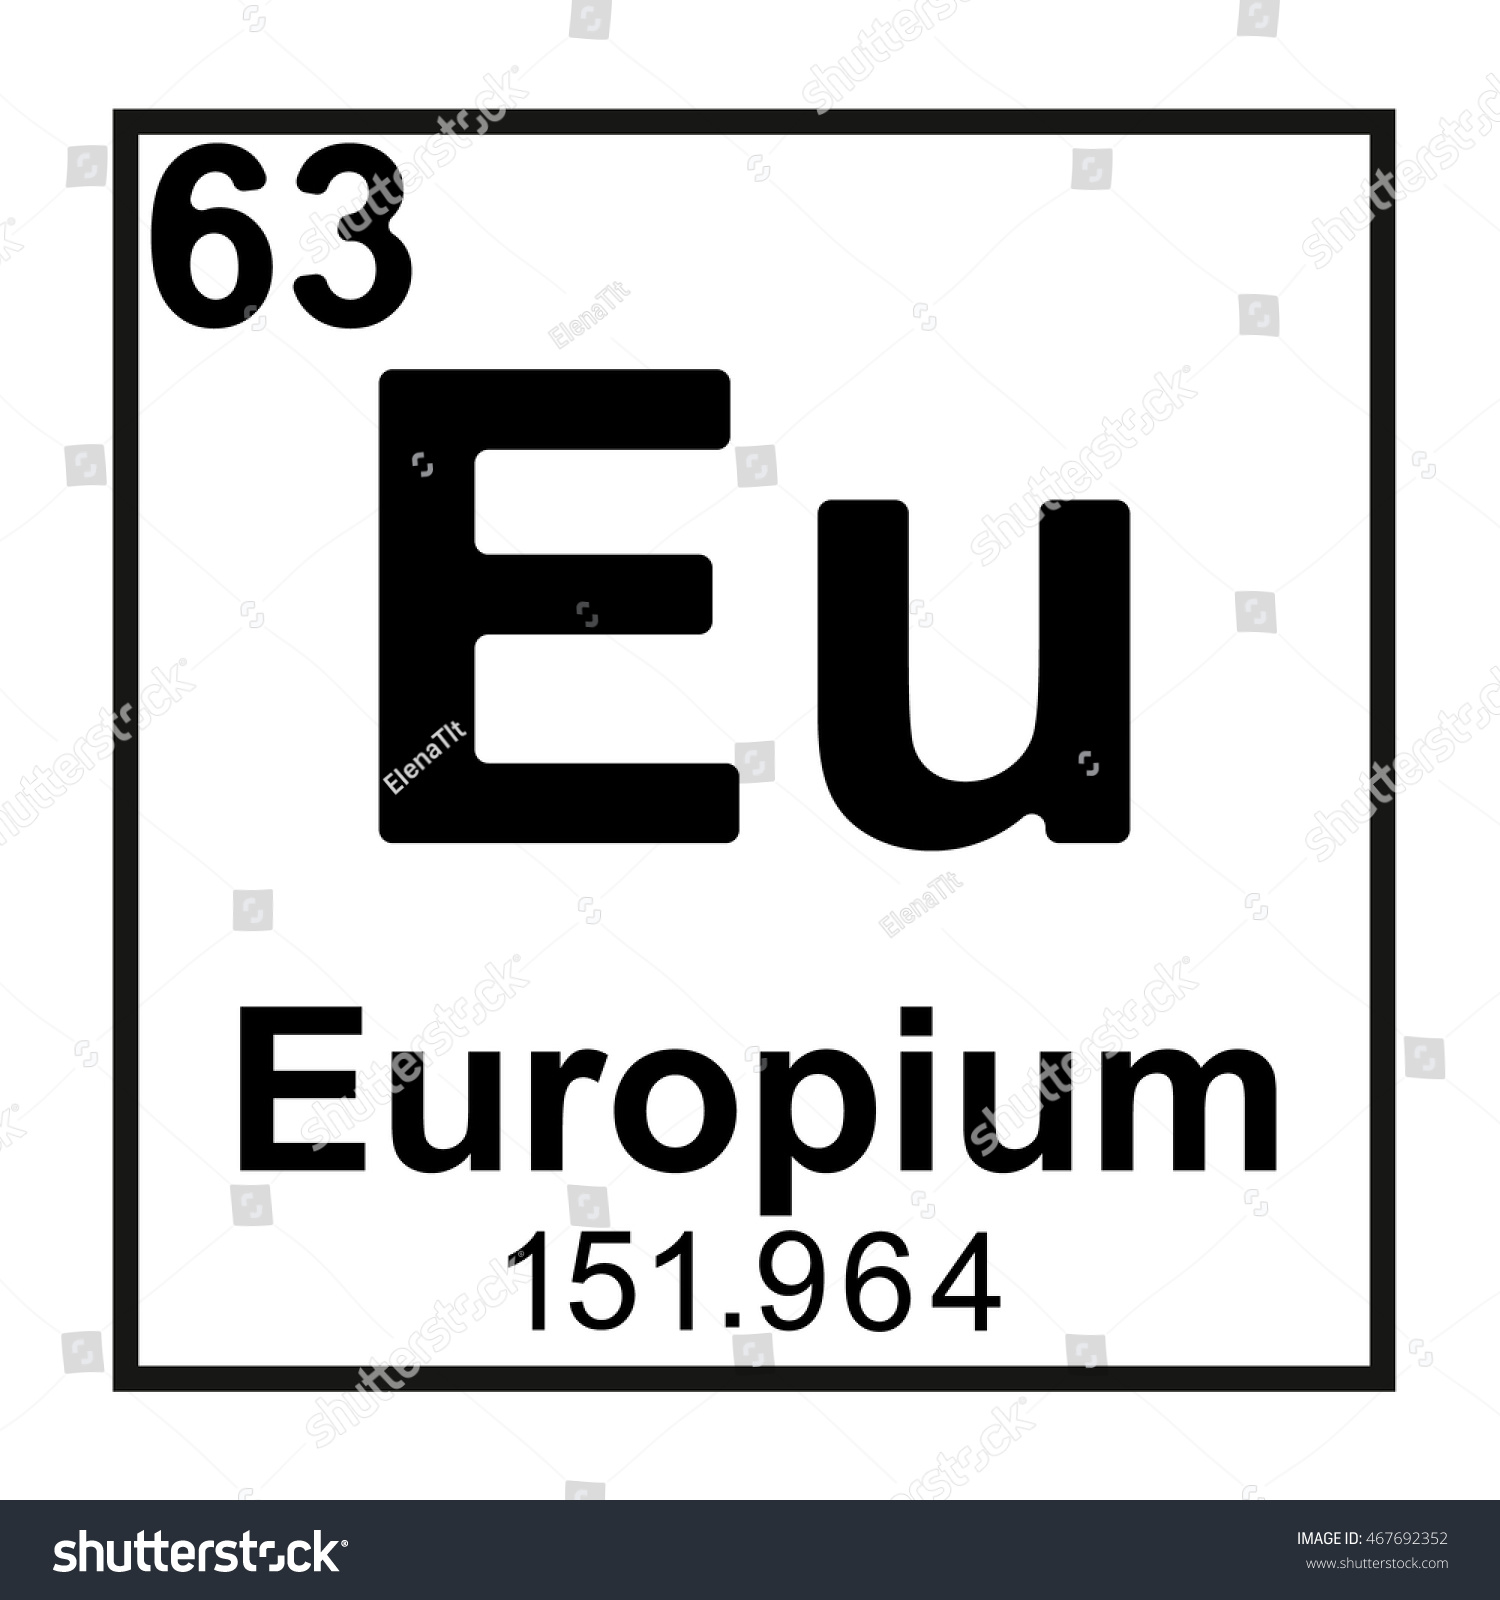 Periodic table element europium stock vector 467692352 shutterstock periodic table element europium gamestrikefo Choice Image